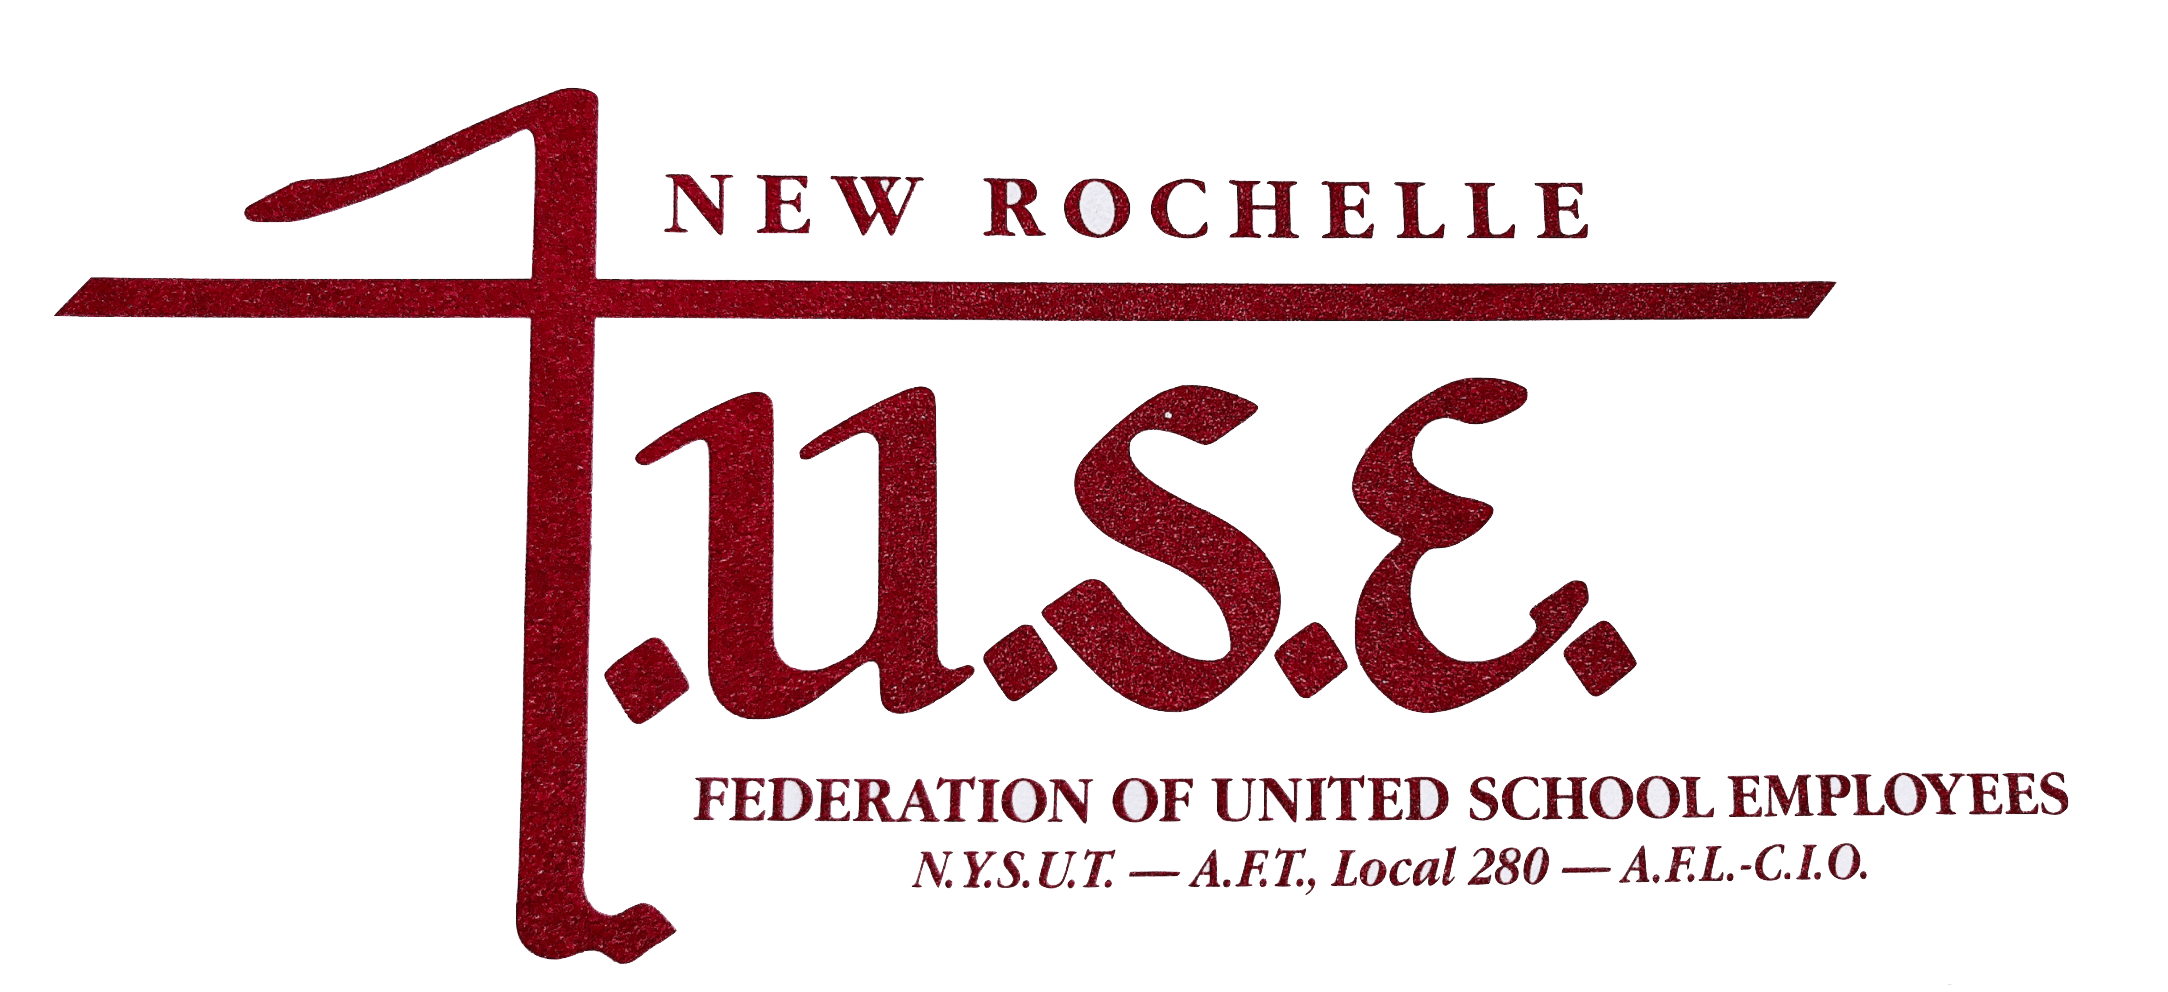 New Rochelle Federation of United School Employees